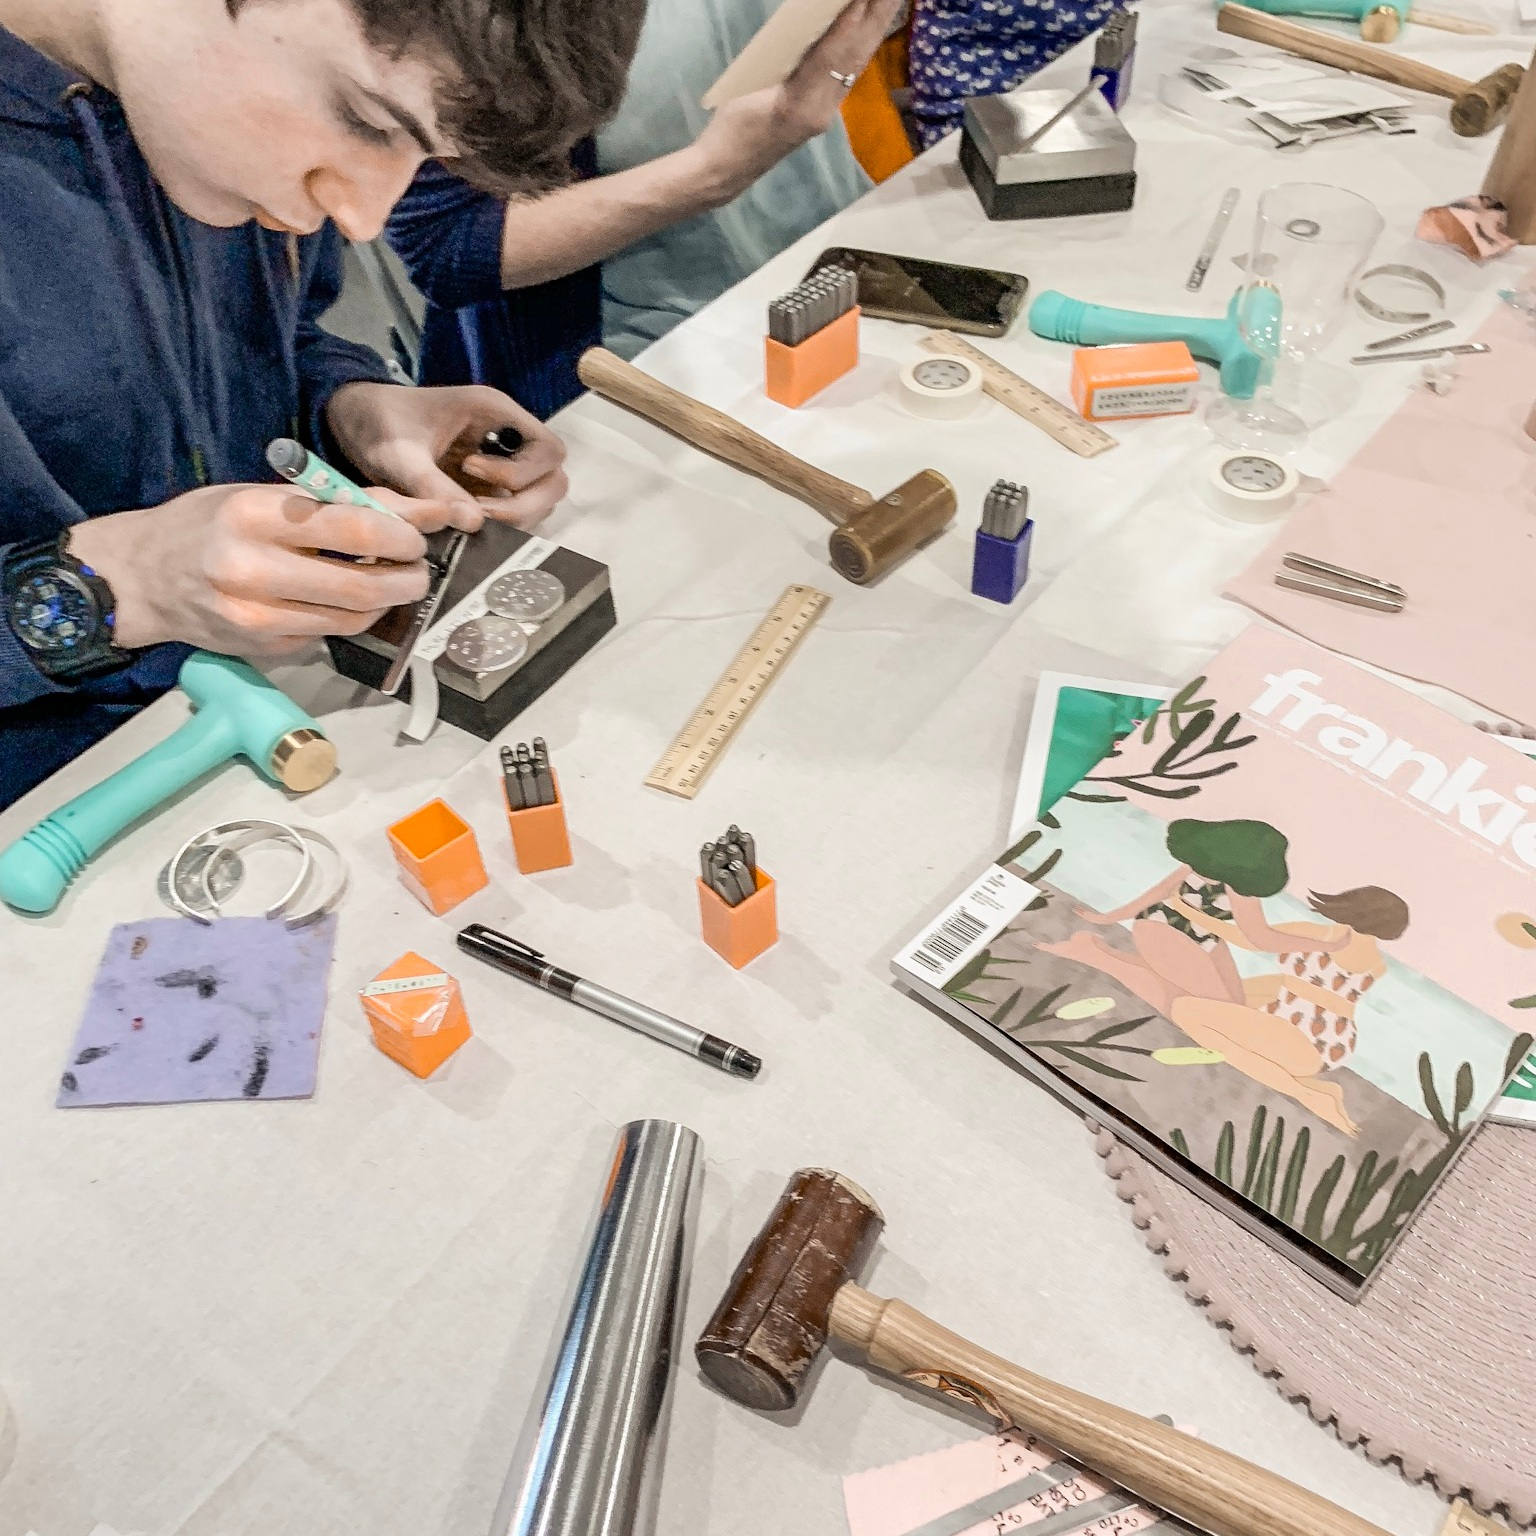 Making+jewellery+at+Pouss+Design+workshop+Bristol